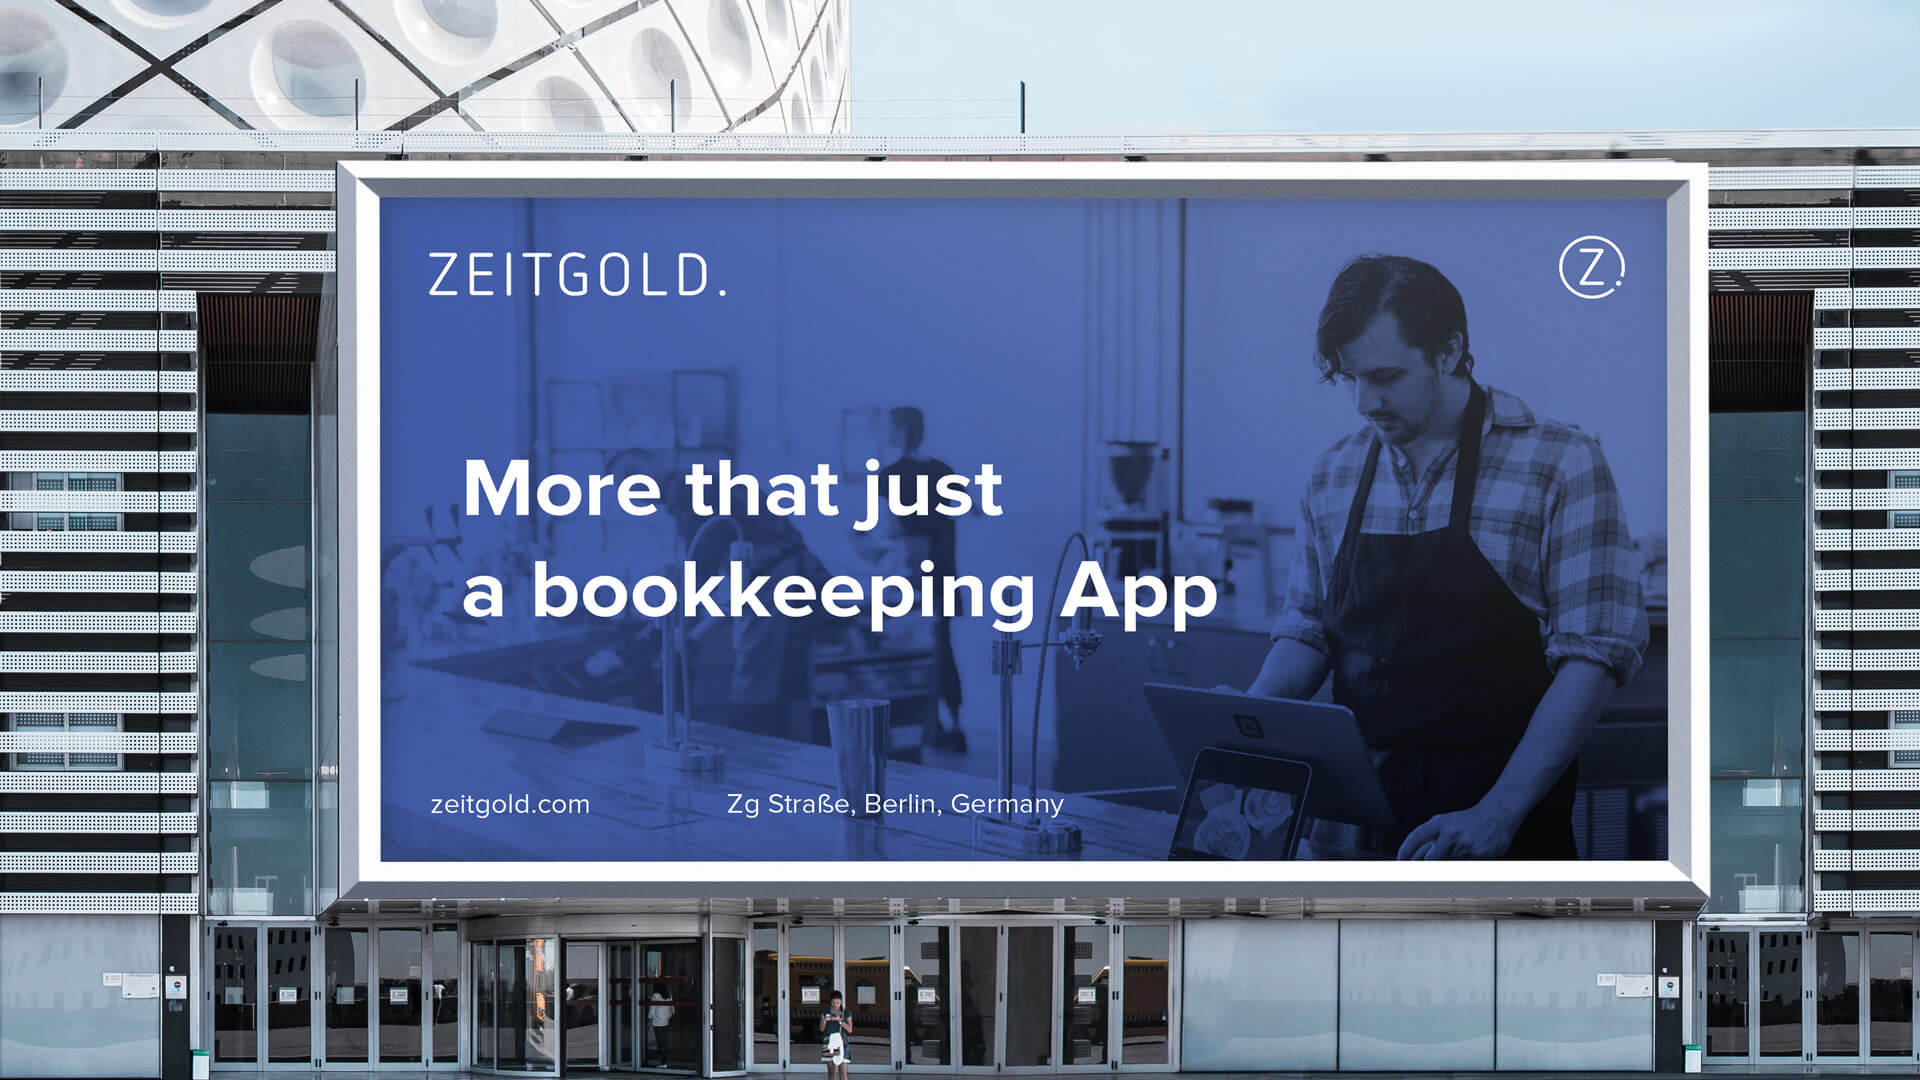 New brand for Zeitgold, Germany's leading fintech startup